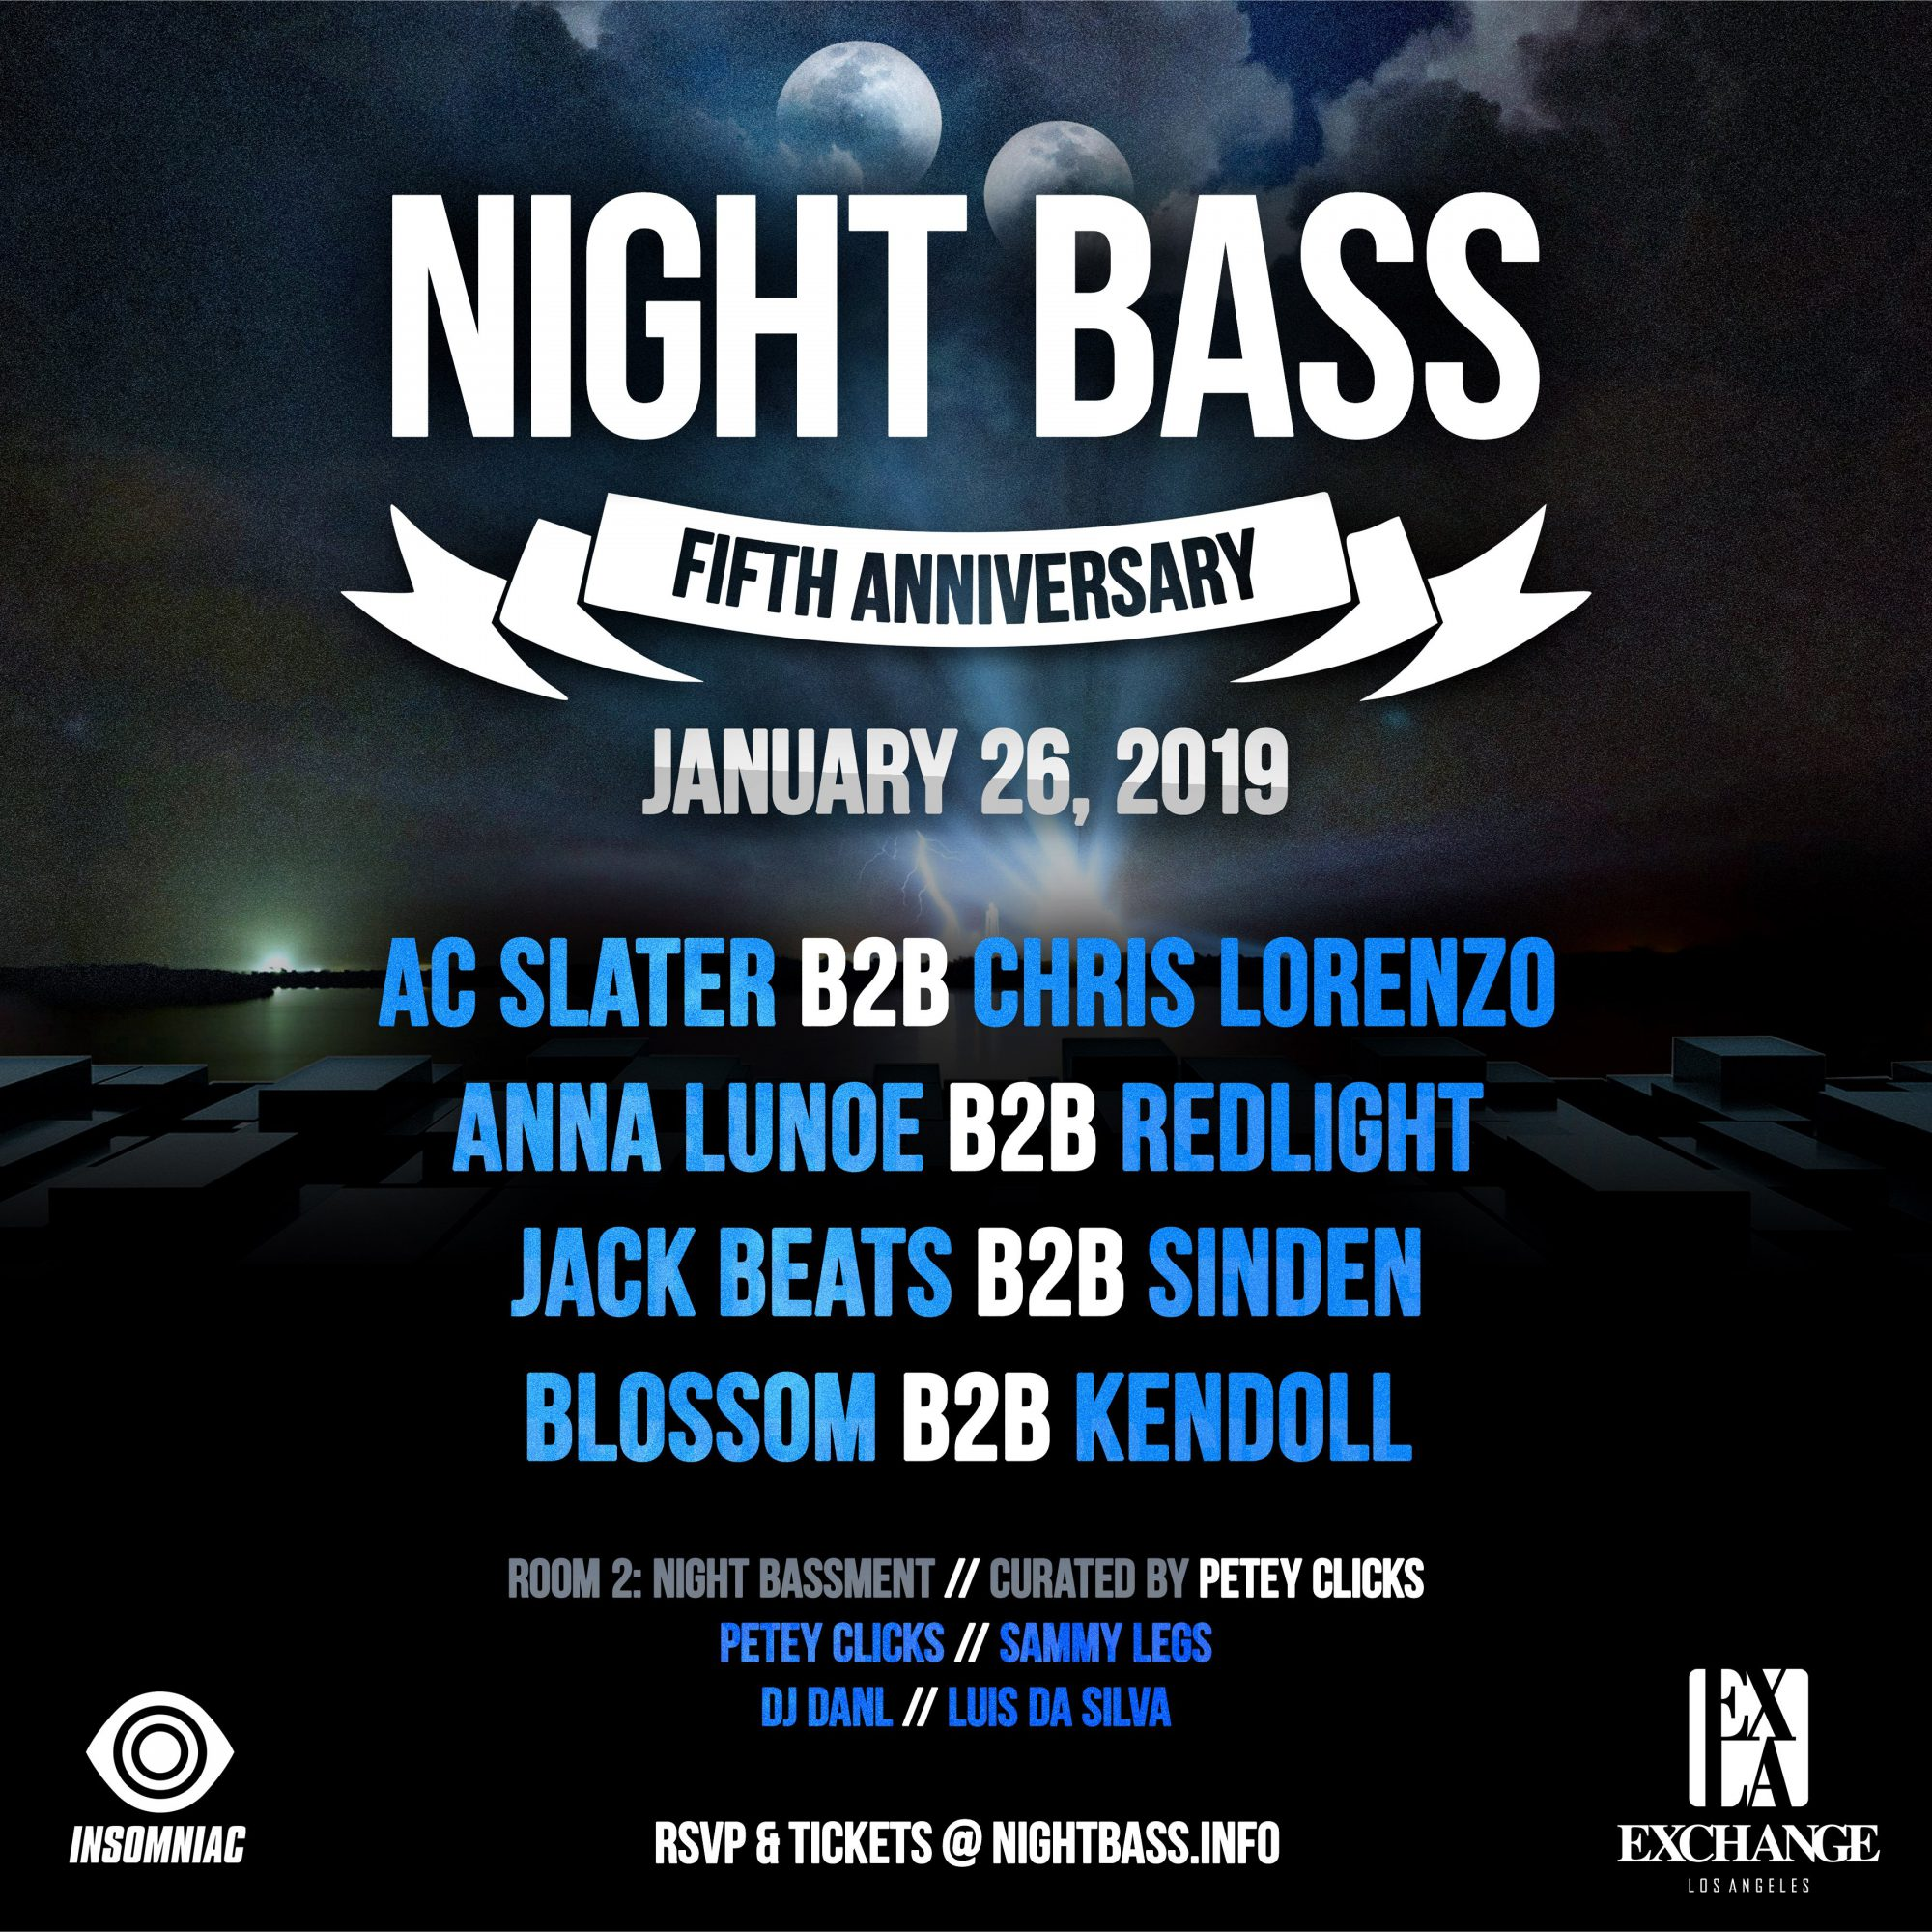 Night Bass 5th Year Anniversary Lineup